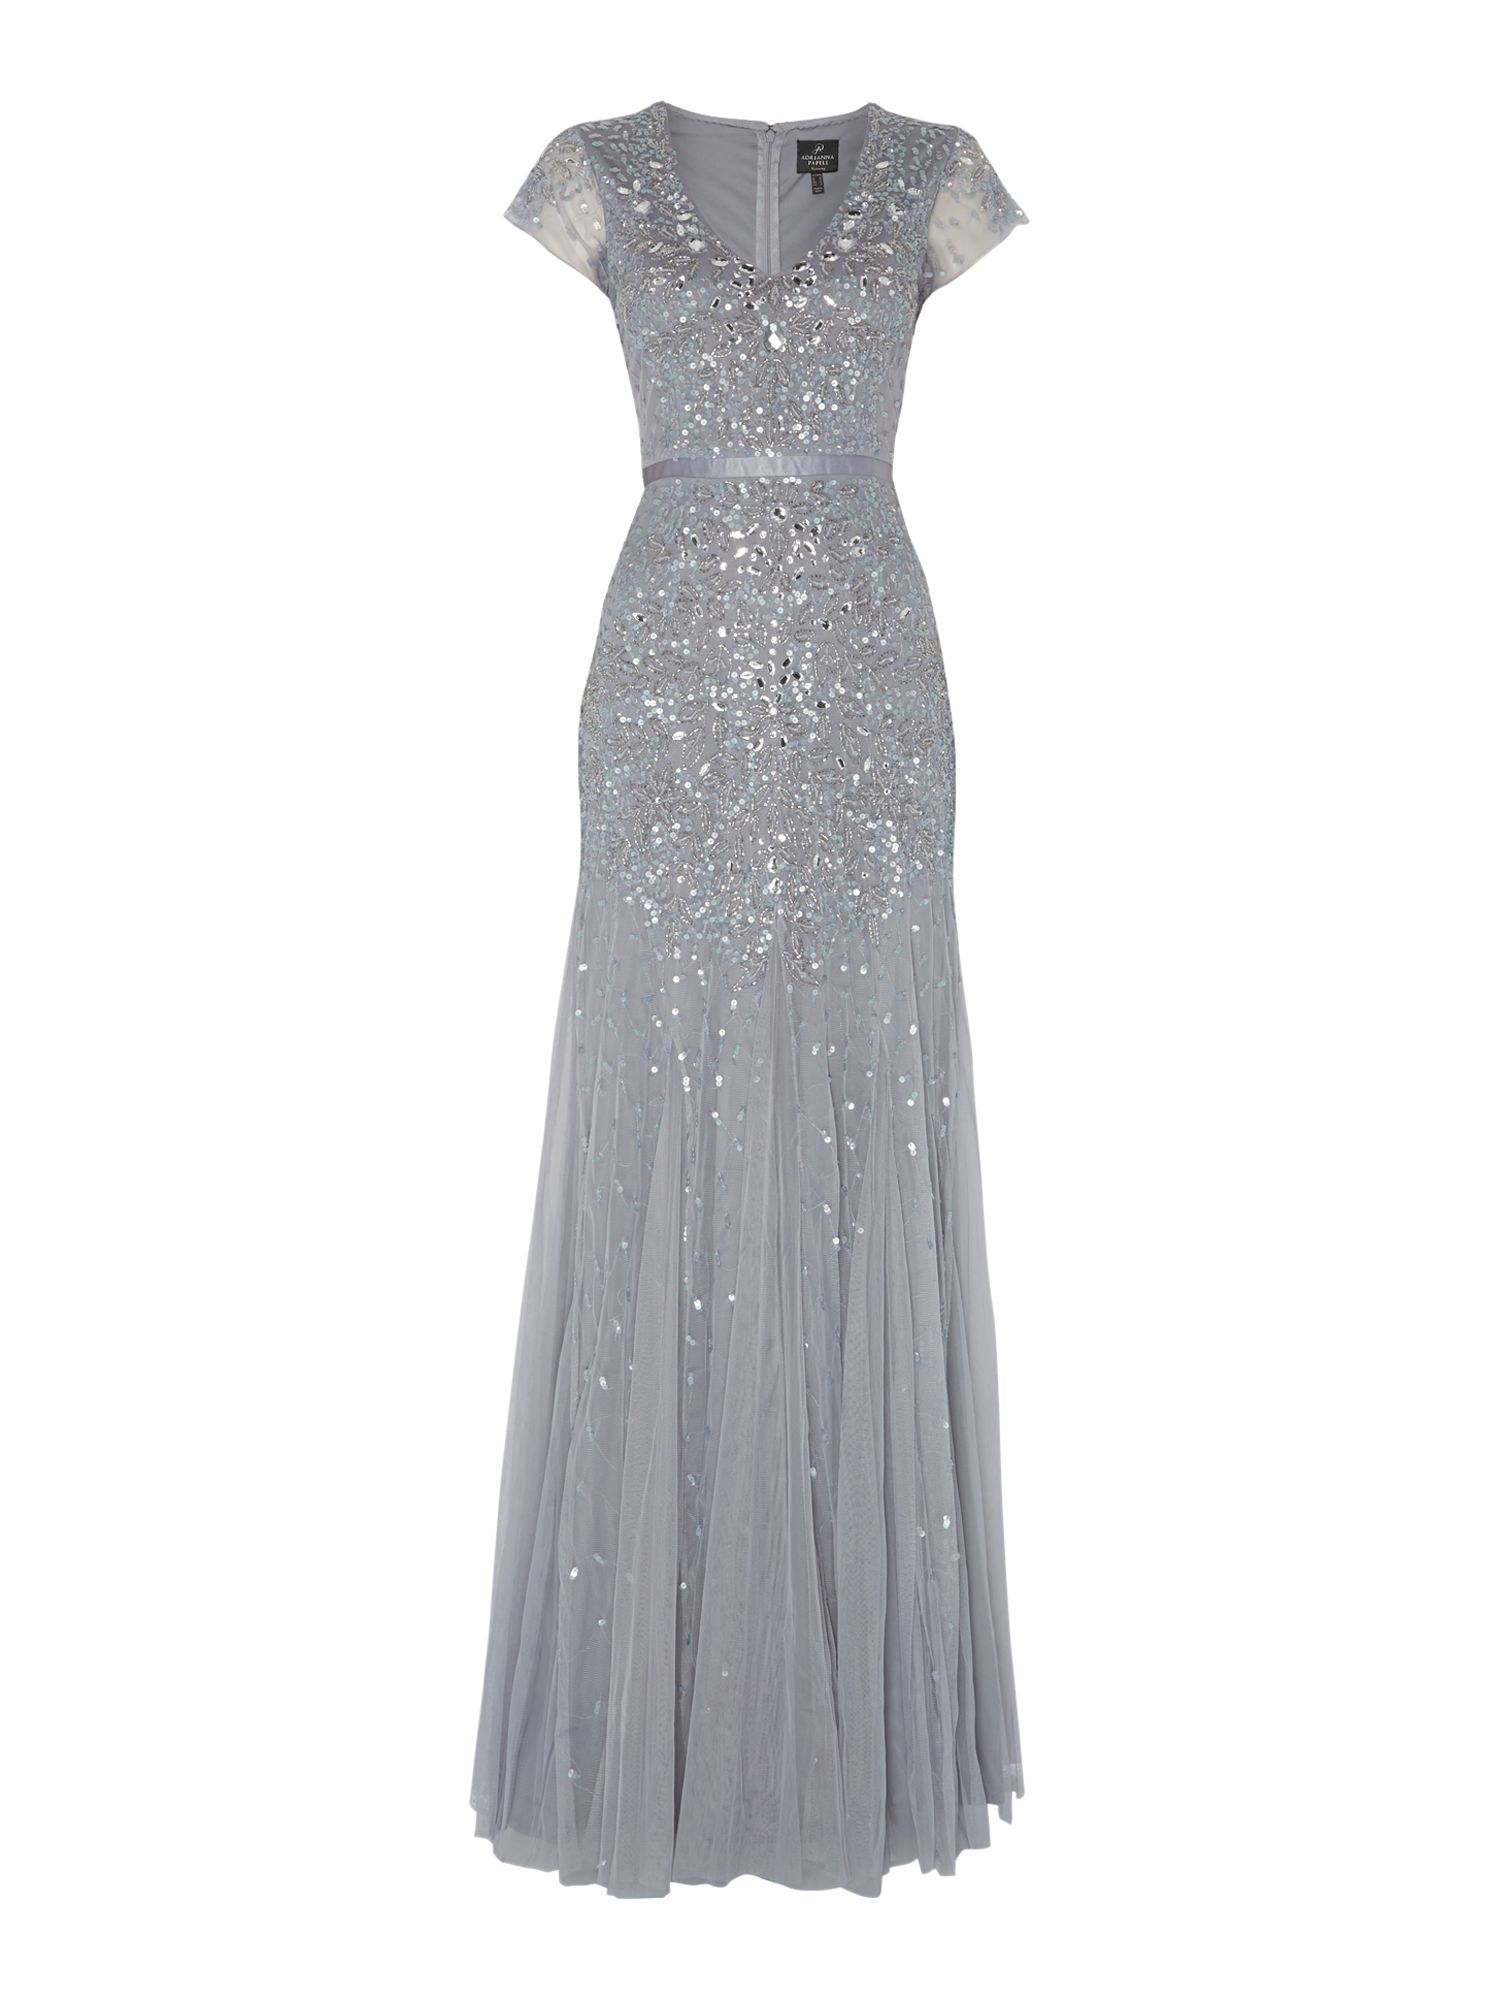 Adrianna Papell Jewel sequin dress with flutter sleeves $290.00 AT vintagedancer.com